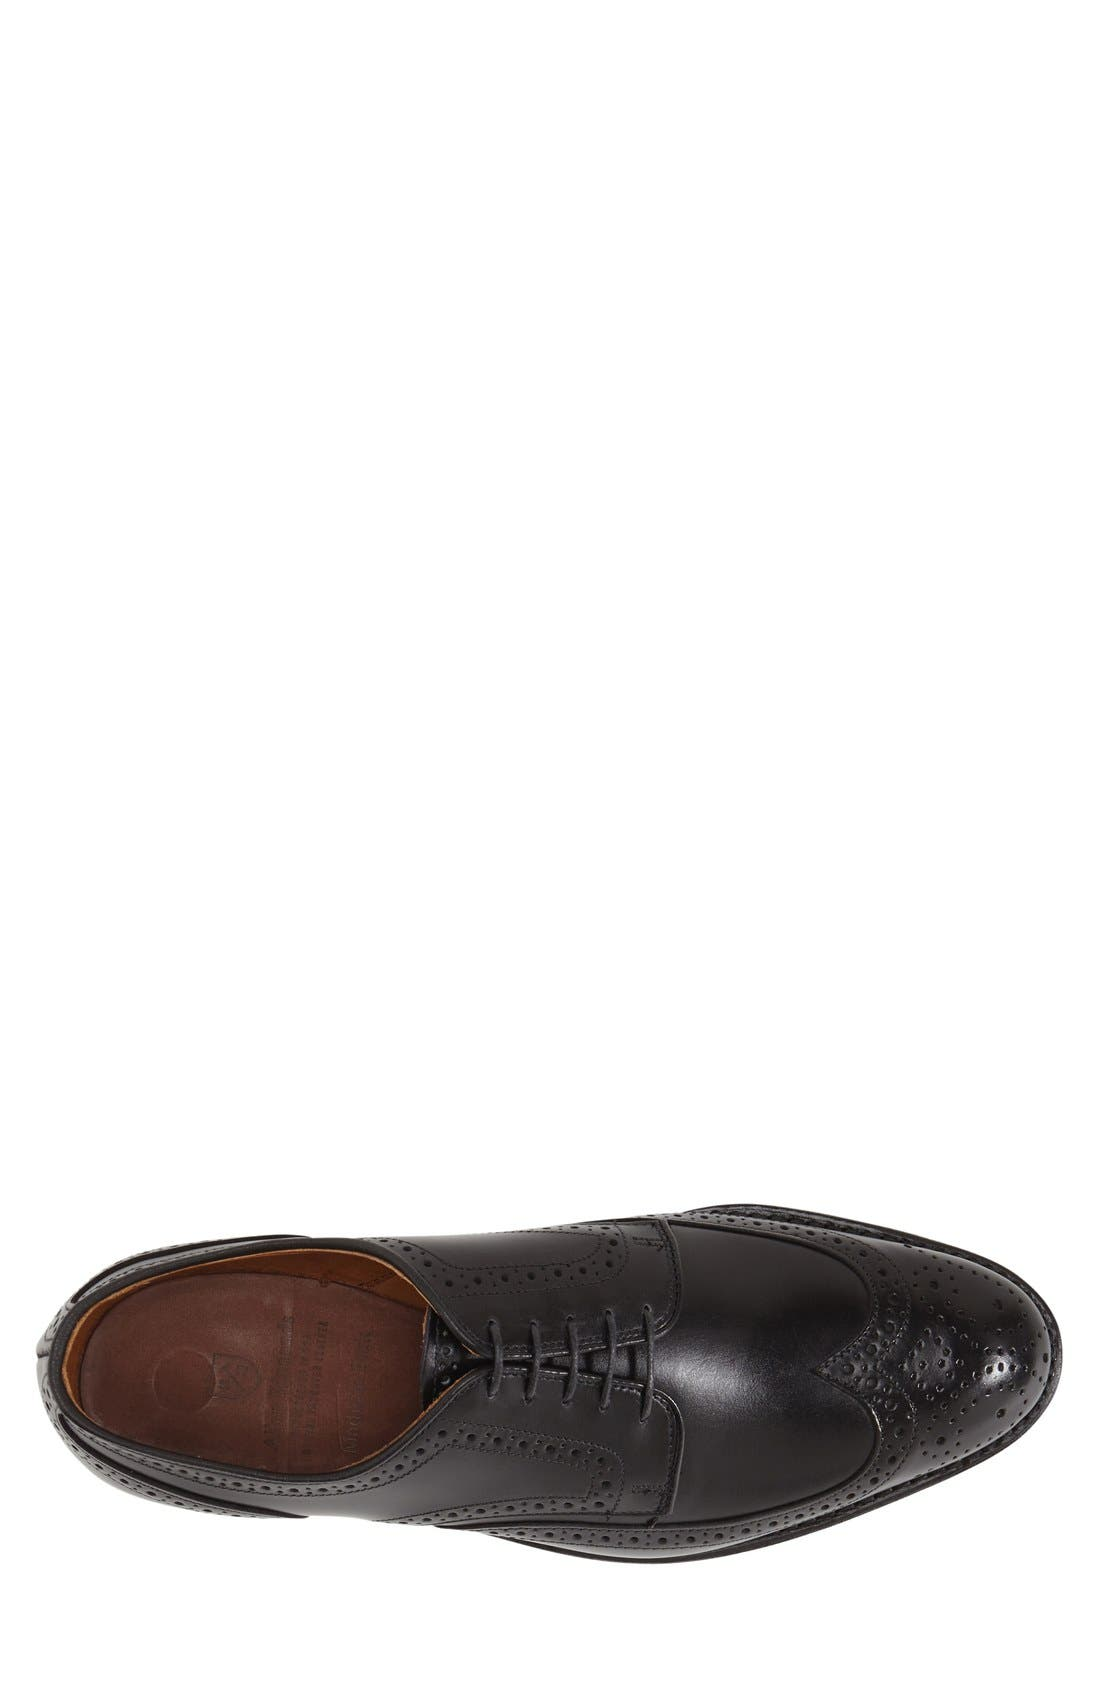 'Madison Park' Wingtip,                             Alternate thumbnail 2, color,                             BLACK LEATHER